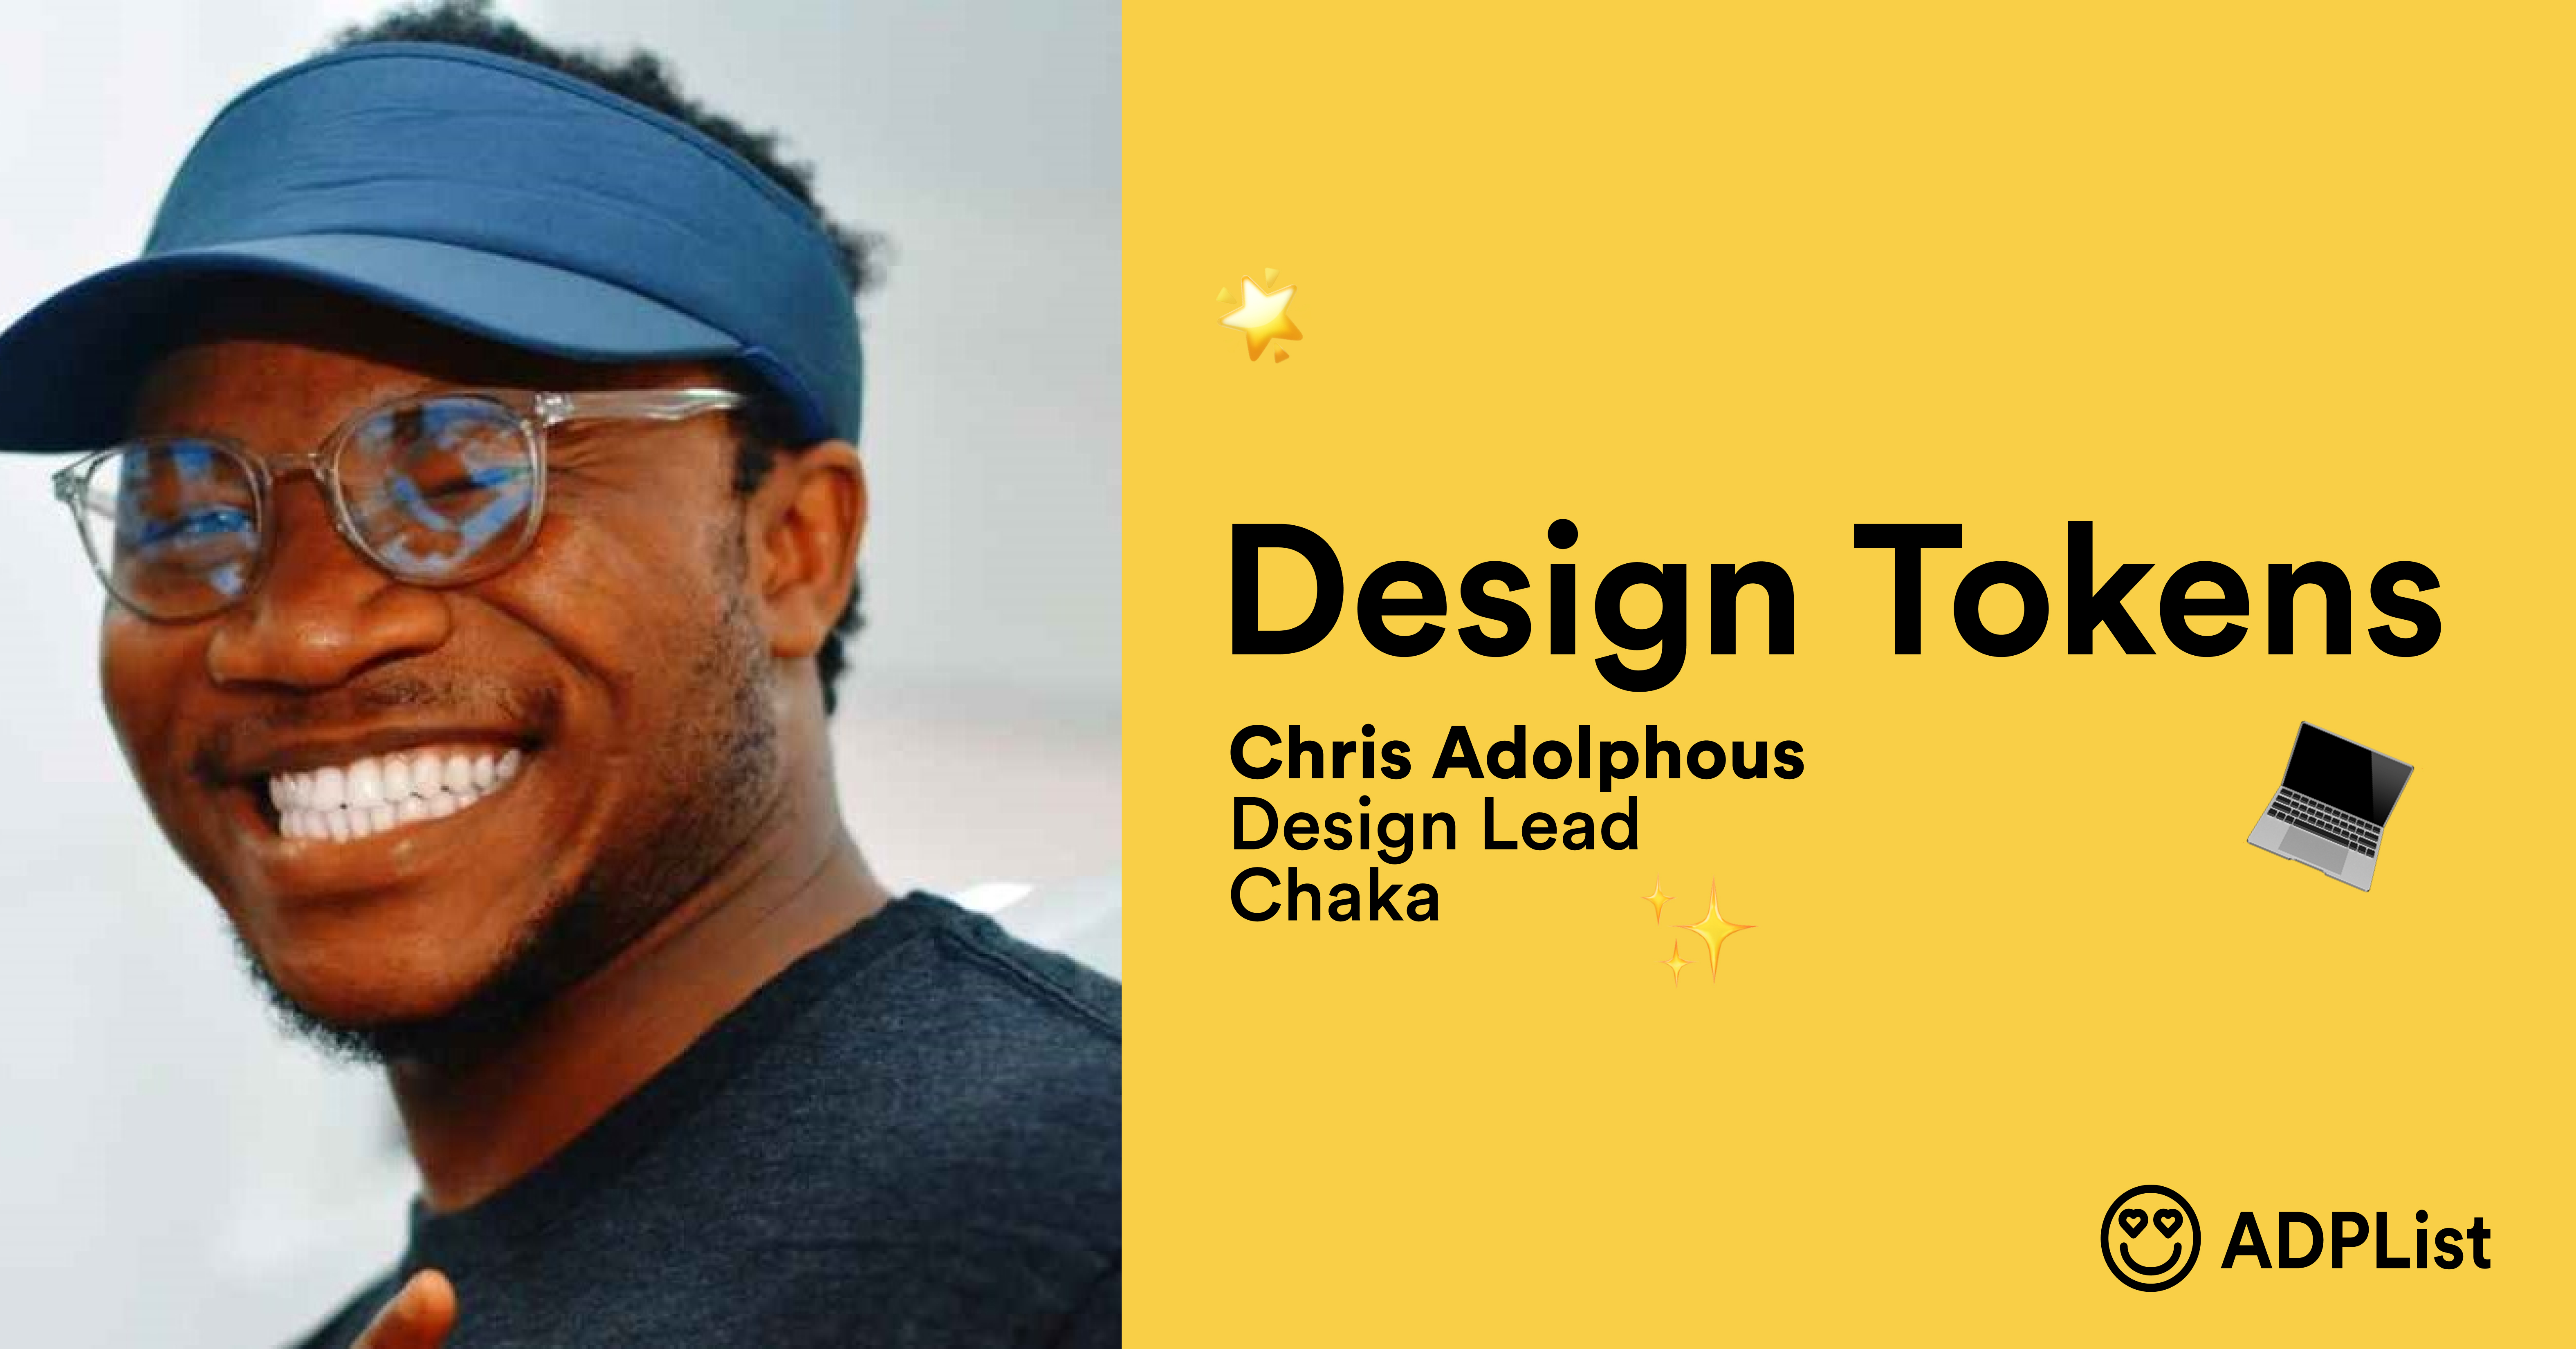 What Are Design Tokens?